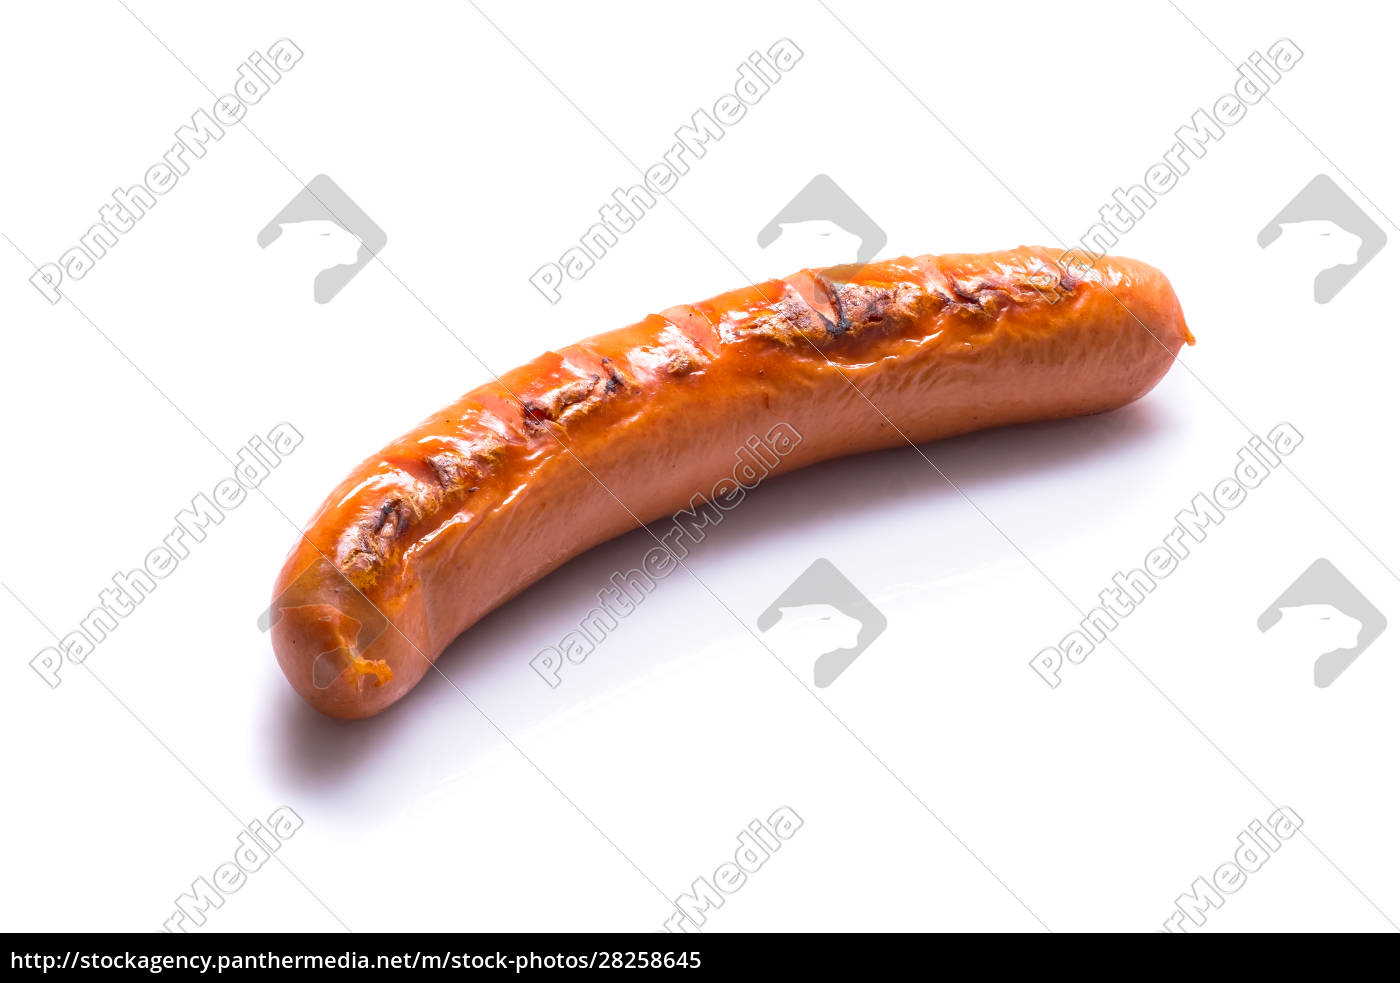 fried, meat, sausage, white, isolated - 28258645